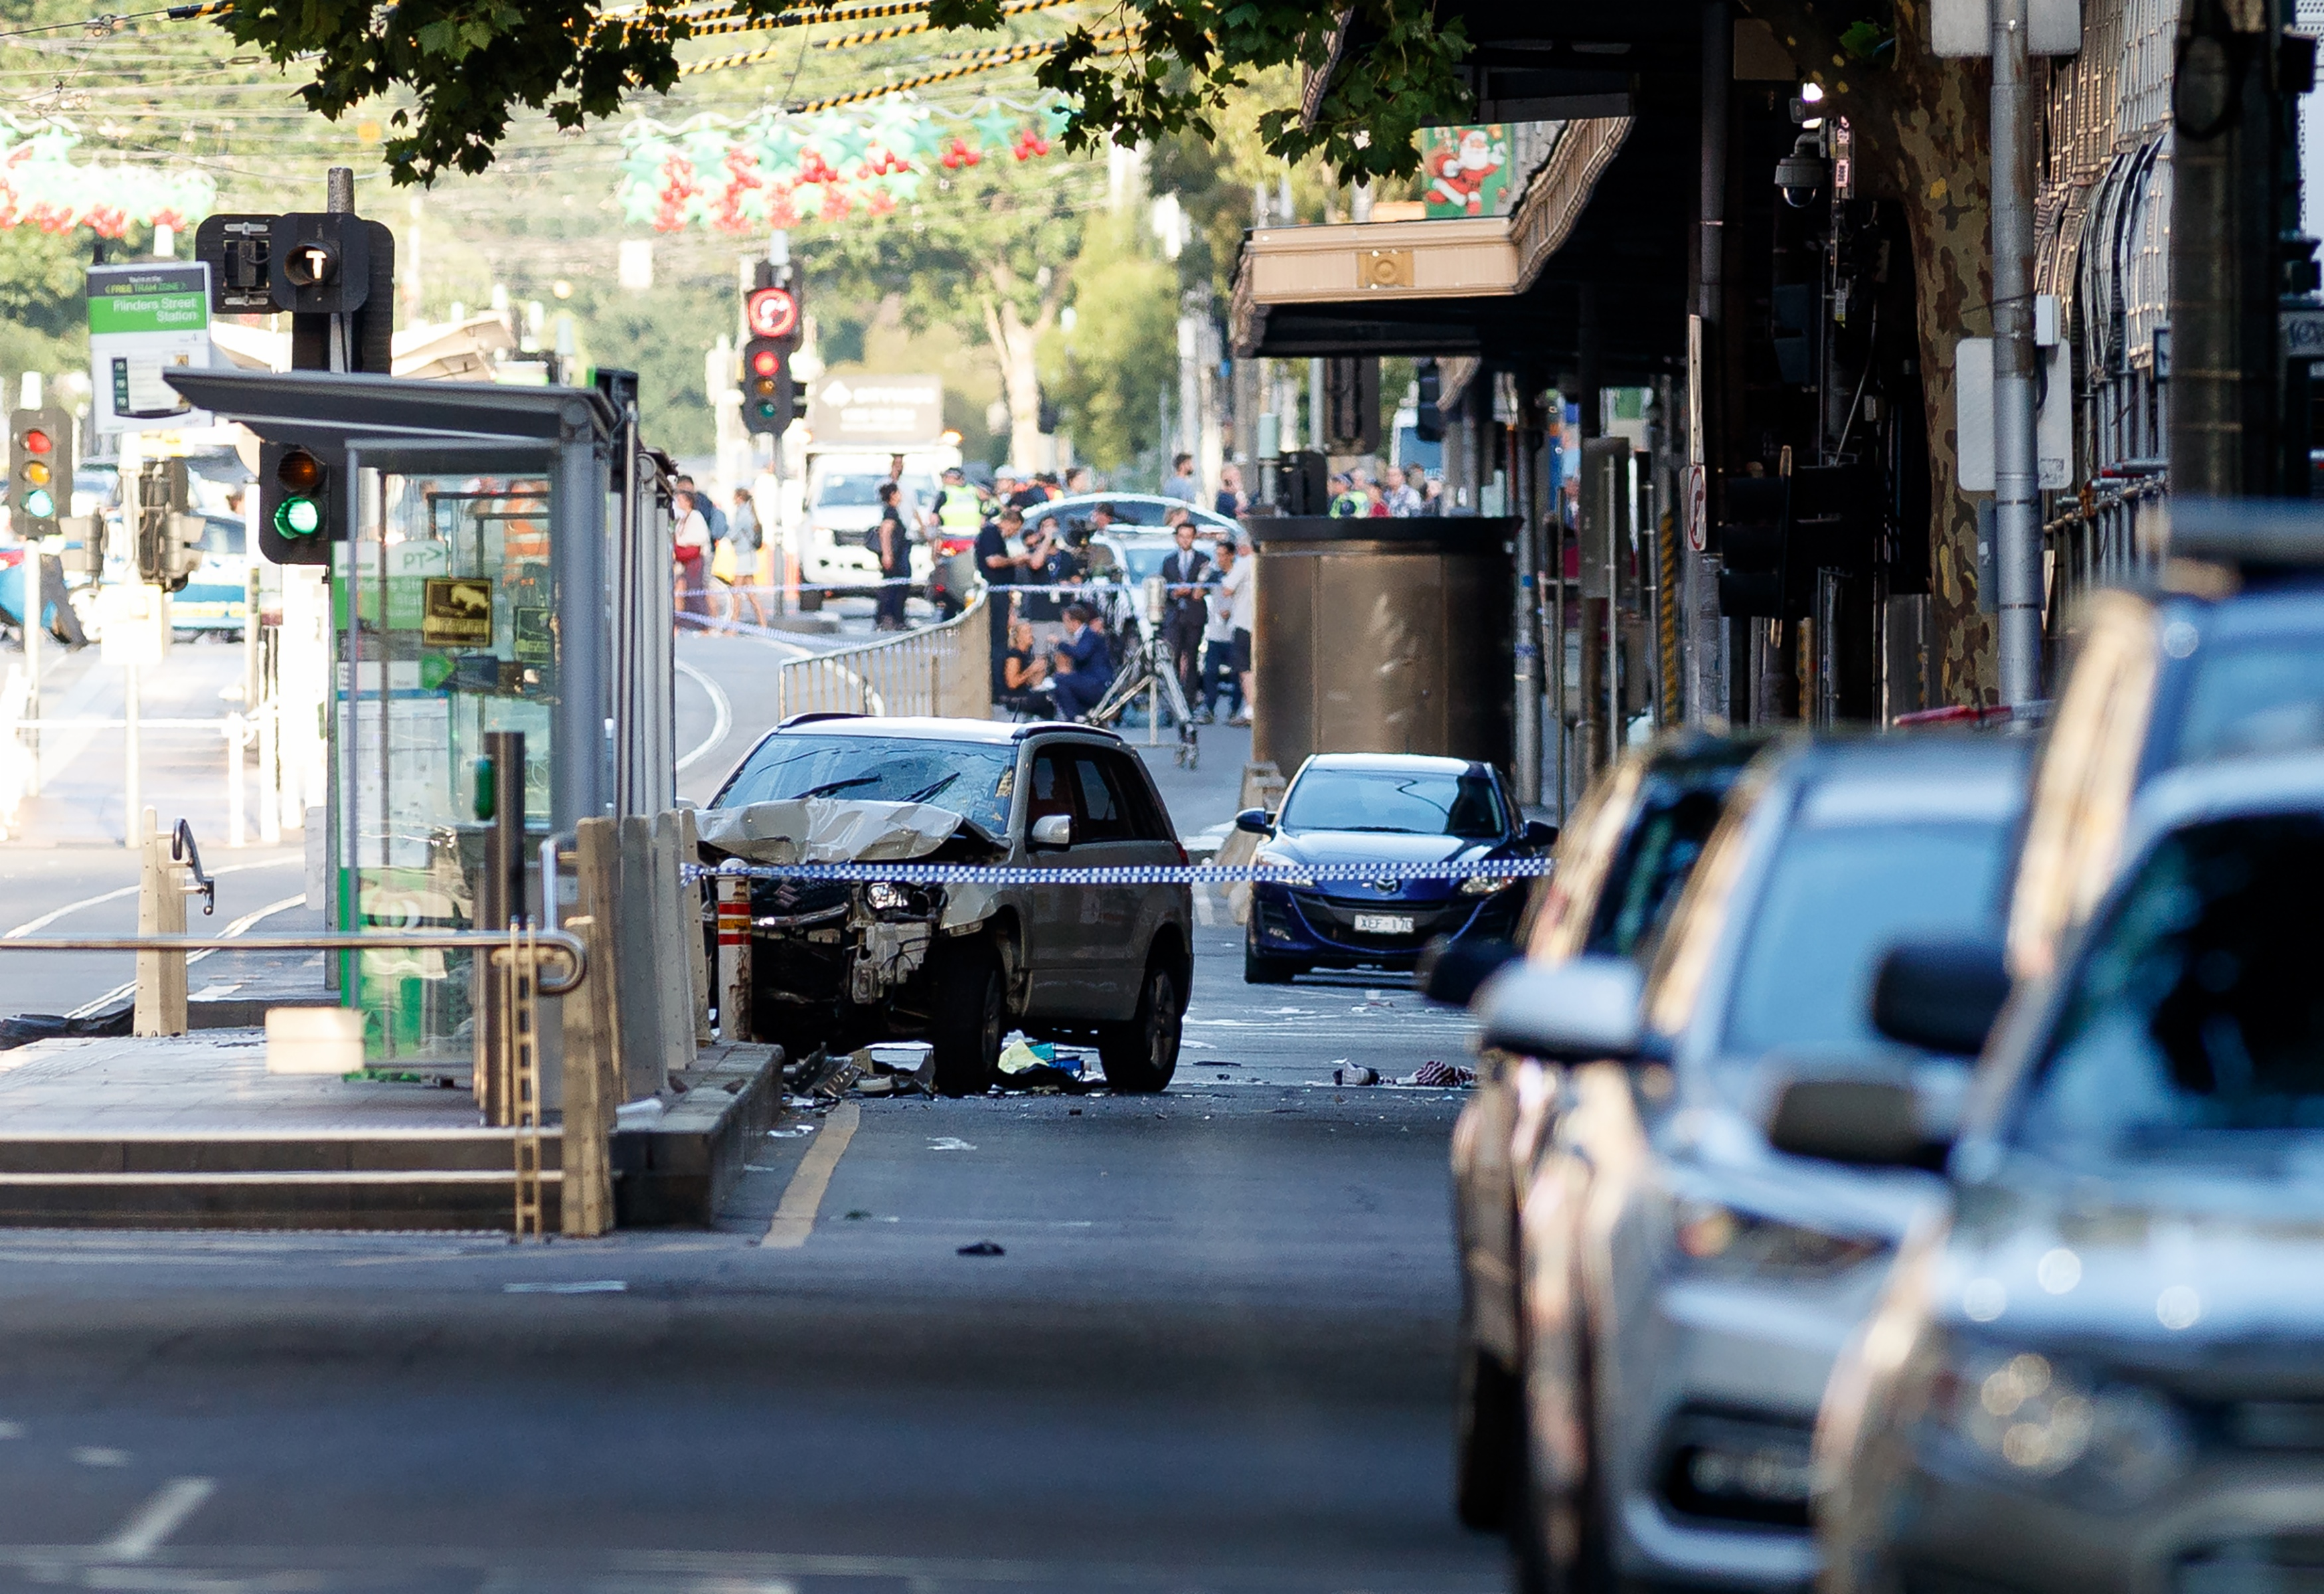 "<div class=""meta image-caption""><div class=""origin-logo origin-image none""><span>none</span></div><span class=""caption-text"">A white SUV (C) sits in the middle of the road as police and emergency personnel work at the scene of where a car ran over pedestrians in Flinders Street in Melbourne. (MARK PETERSON/AFP/Getty Images)</span></div>"